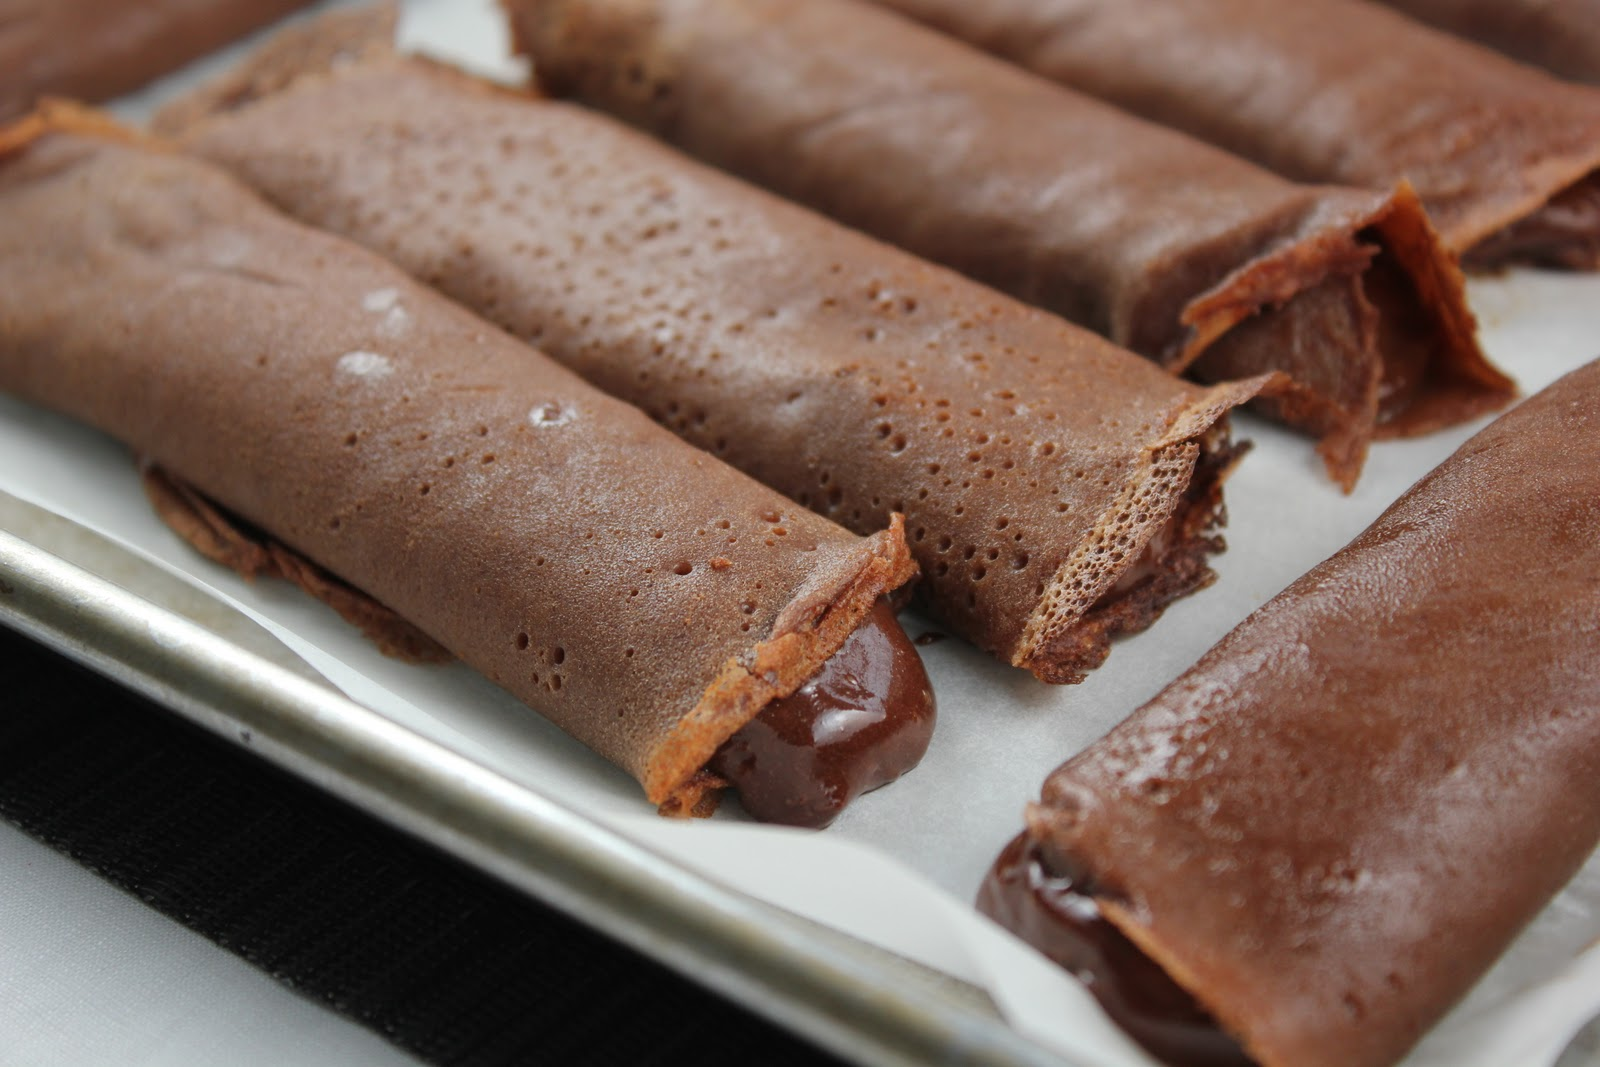 Frozen Chocolate Crêpes - That Skinny Chick Can Bake